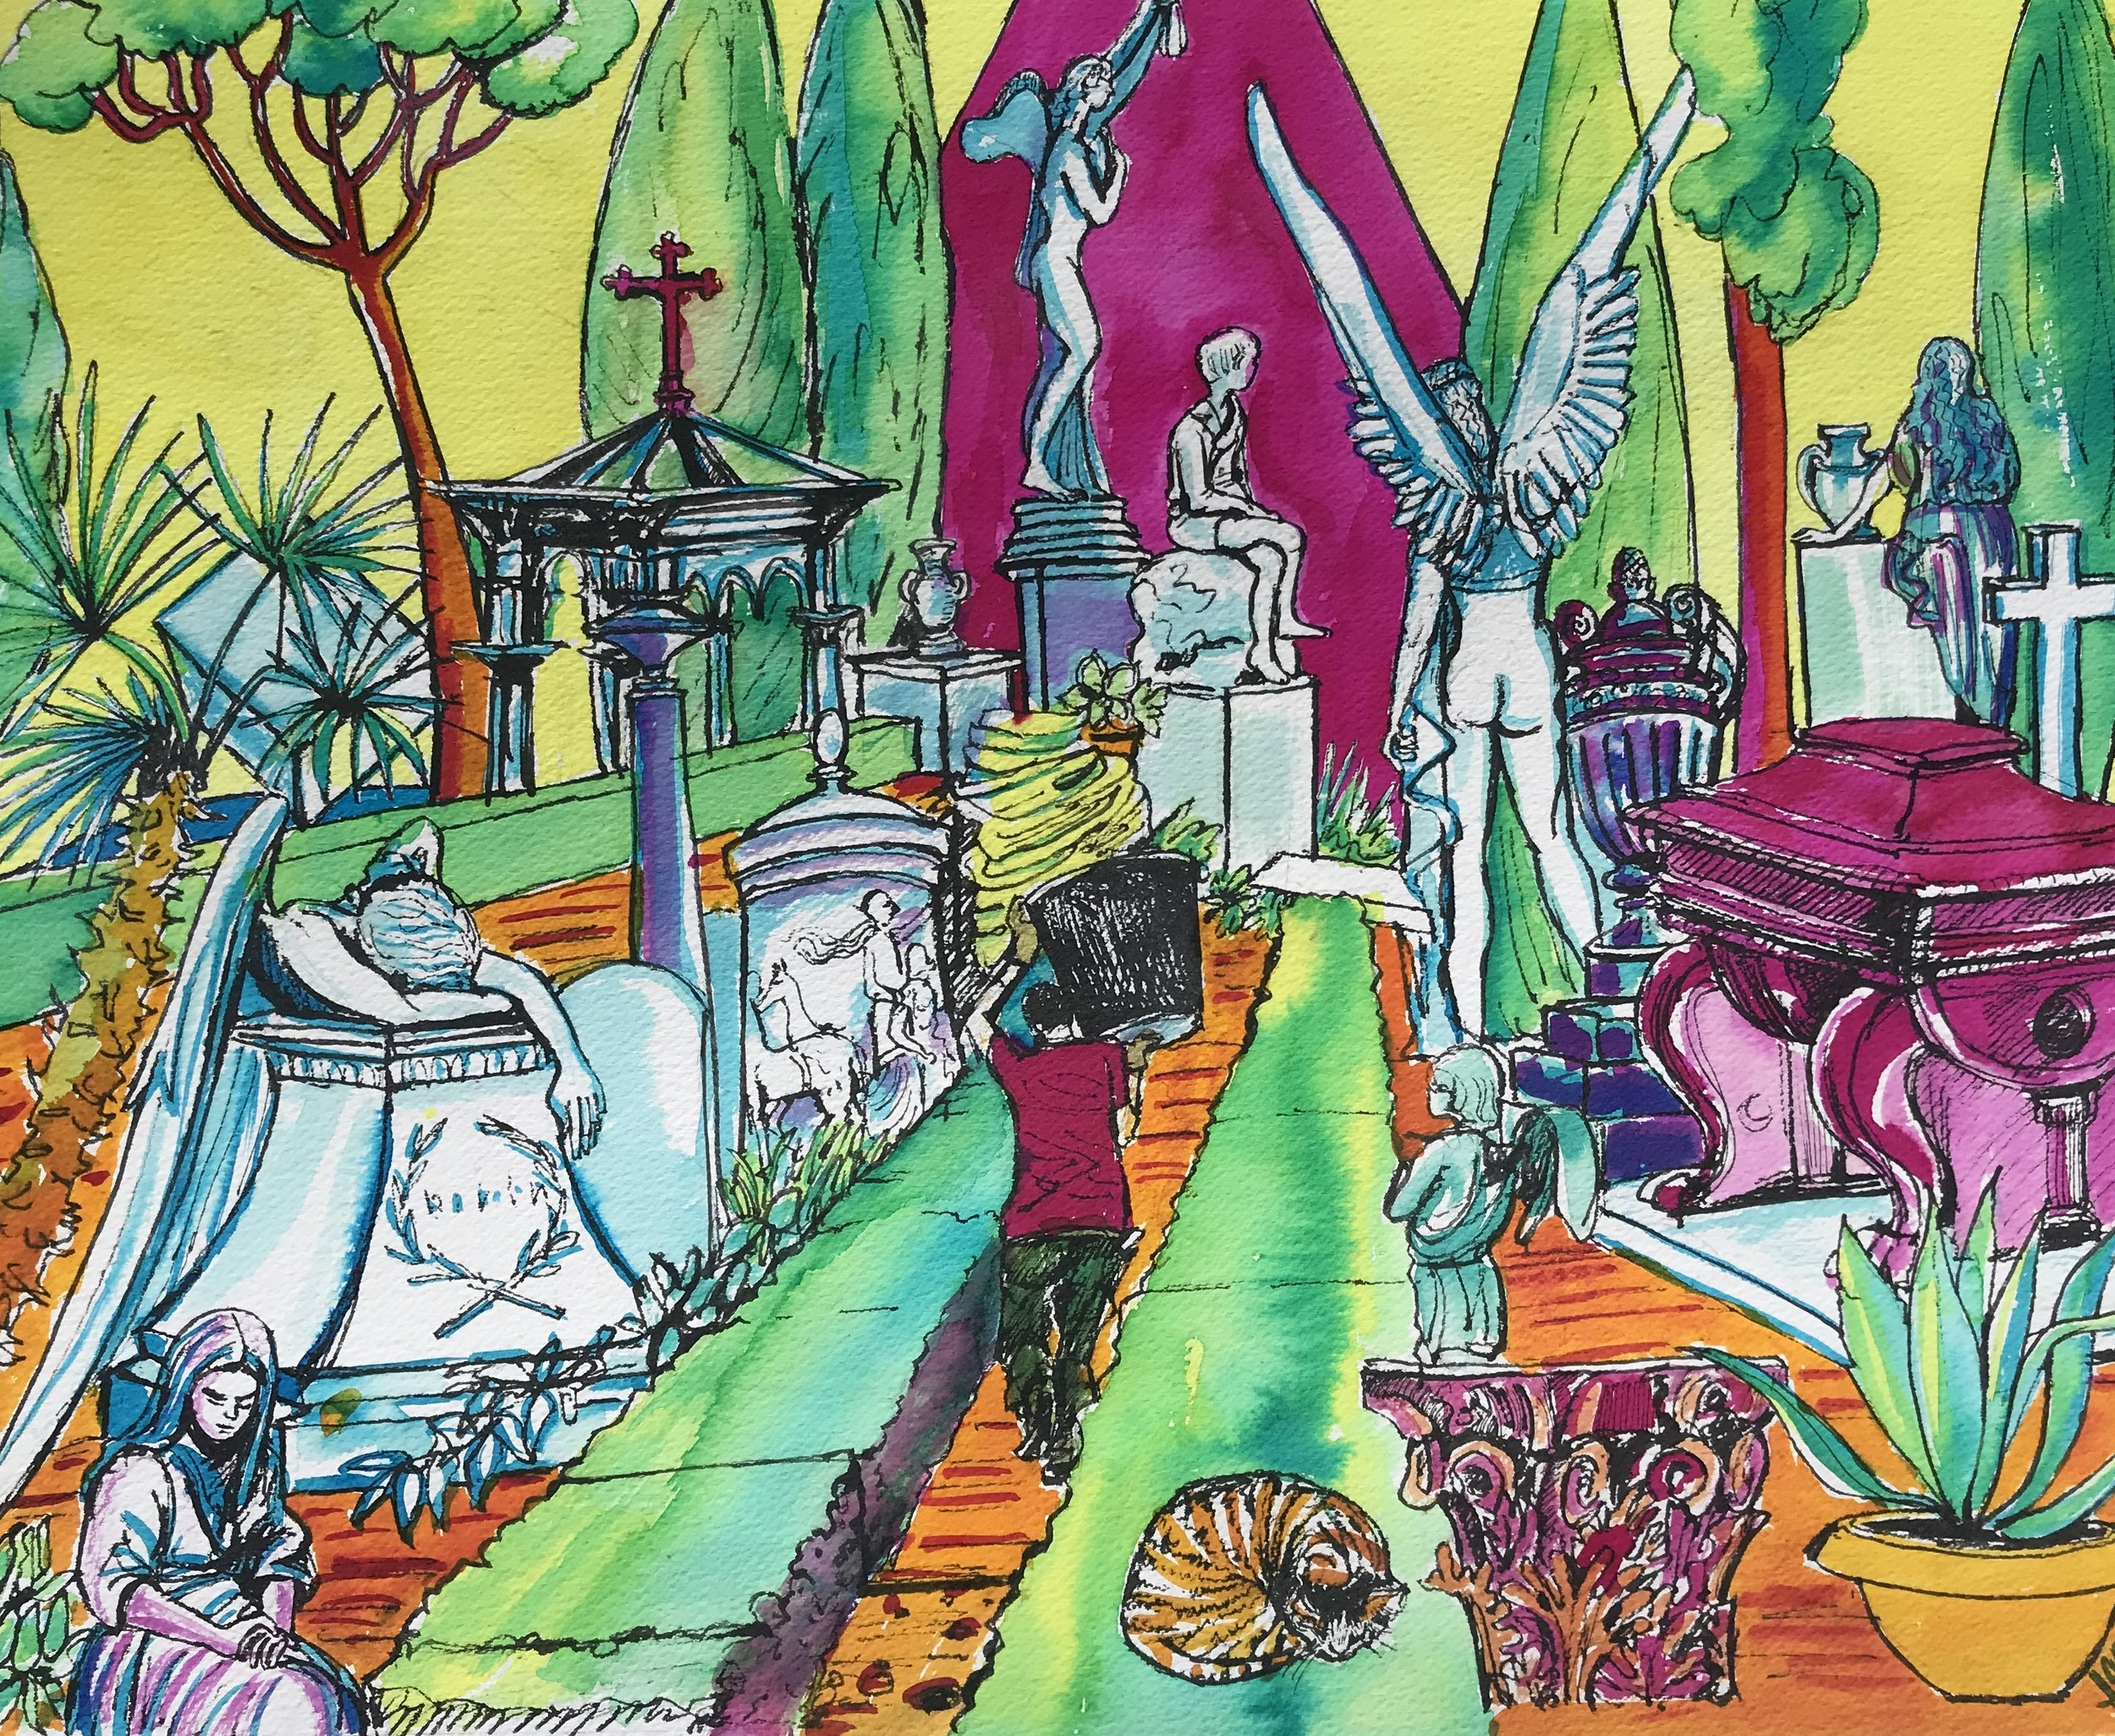 Multicoloured Cemetery Non Catholic Cemetery of Rome. (coloured inks, pen and ink) 49 x 57.5cm £60 framed